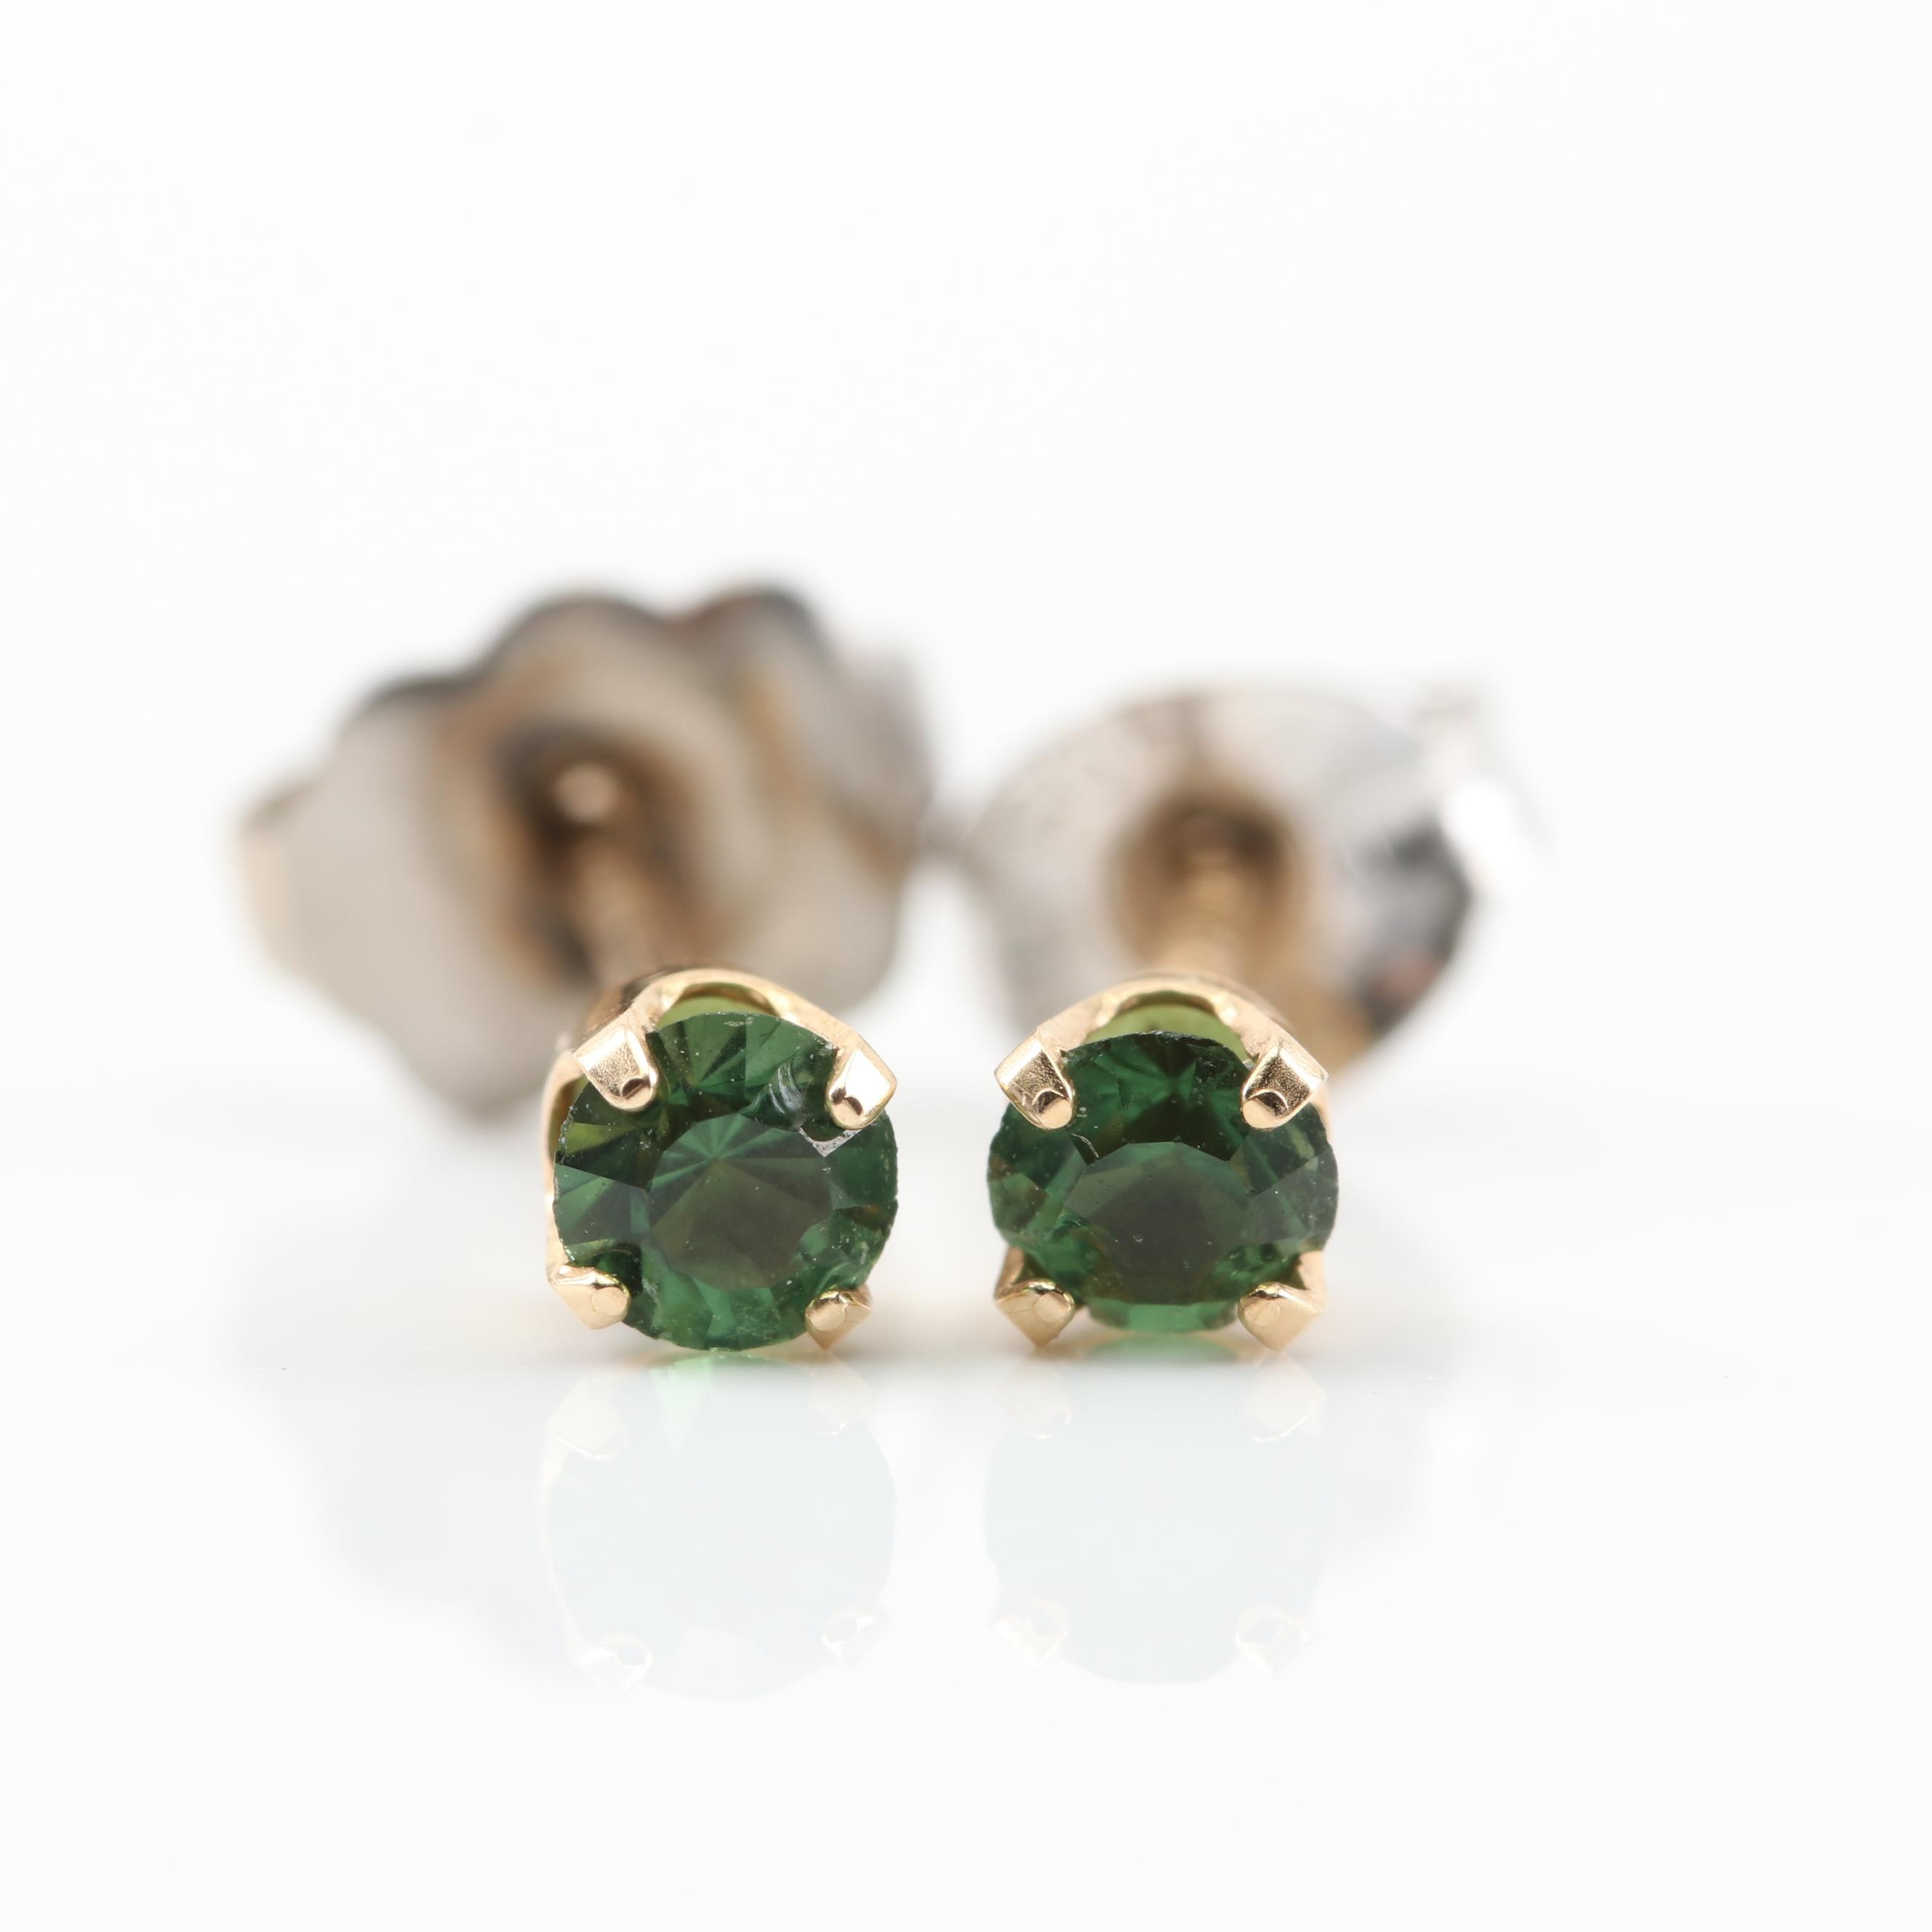 14K Yellow Gold Simulated Stone Stud Earrings